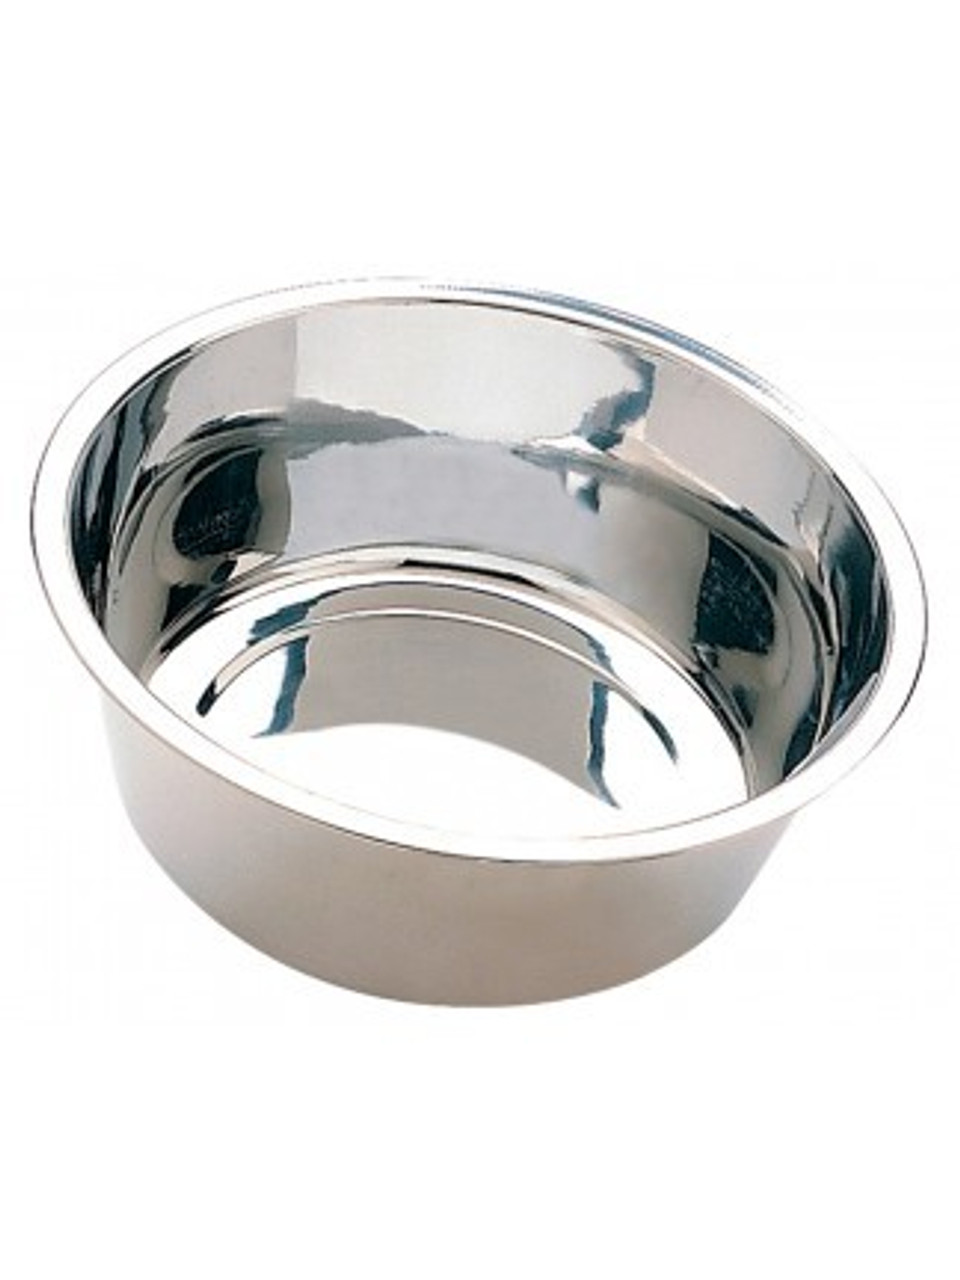 Spot Mirror Finish Stainless Steel Pet Bowls